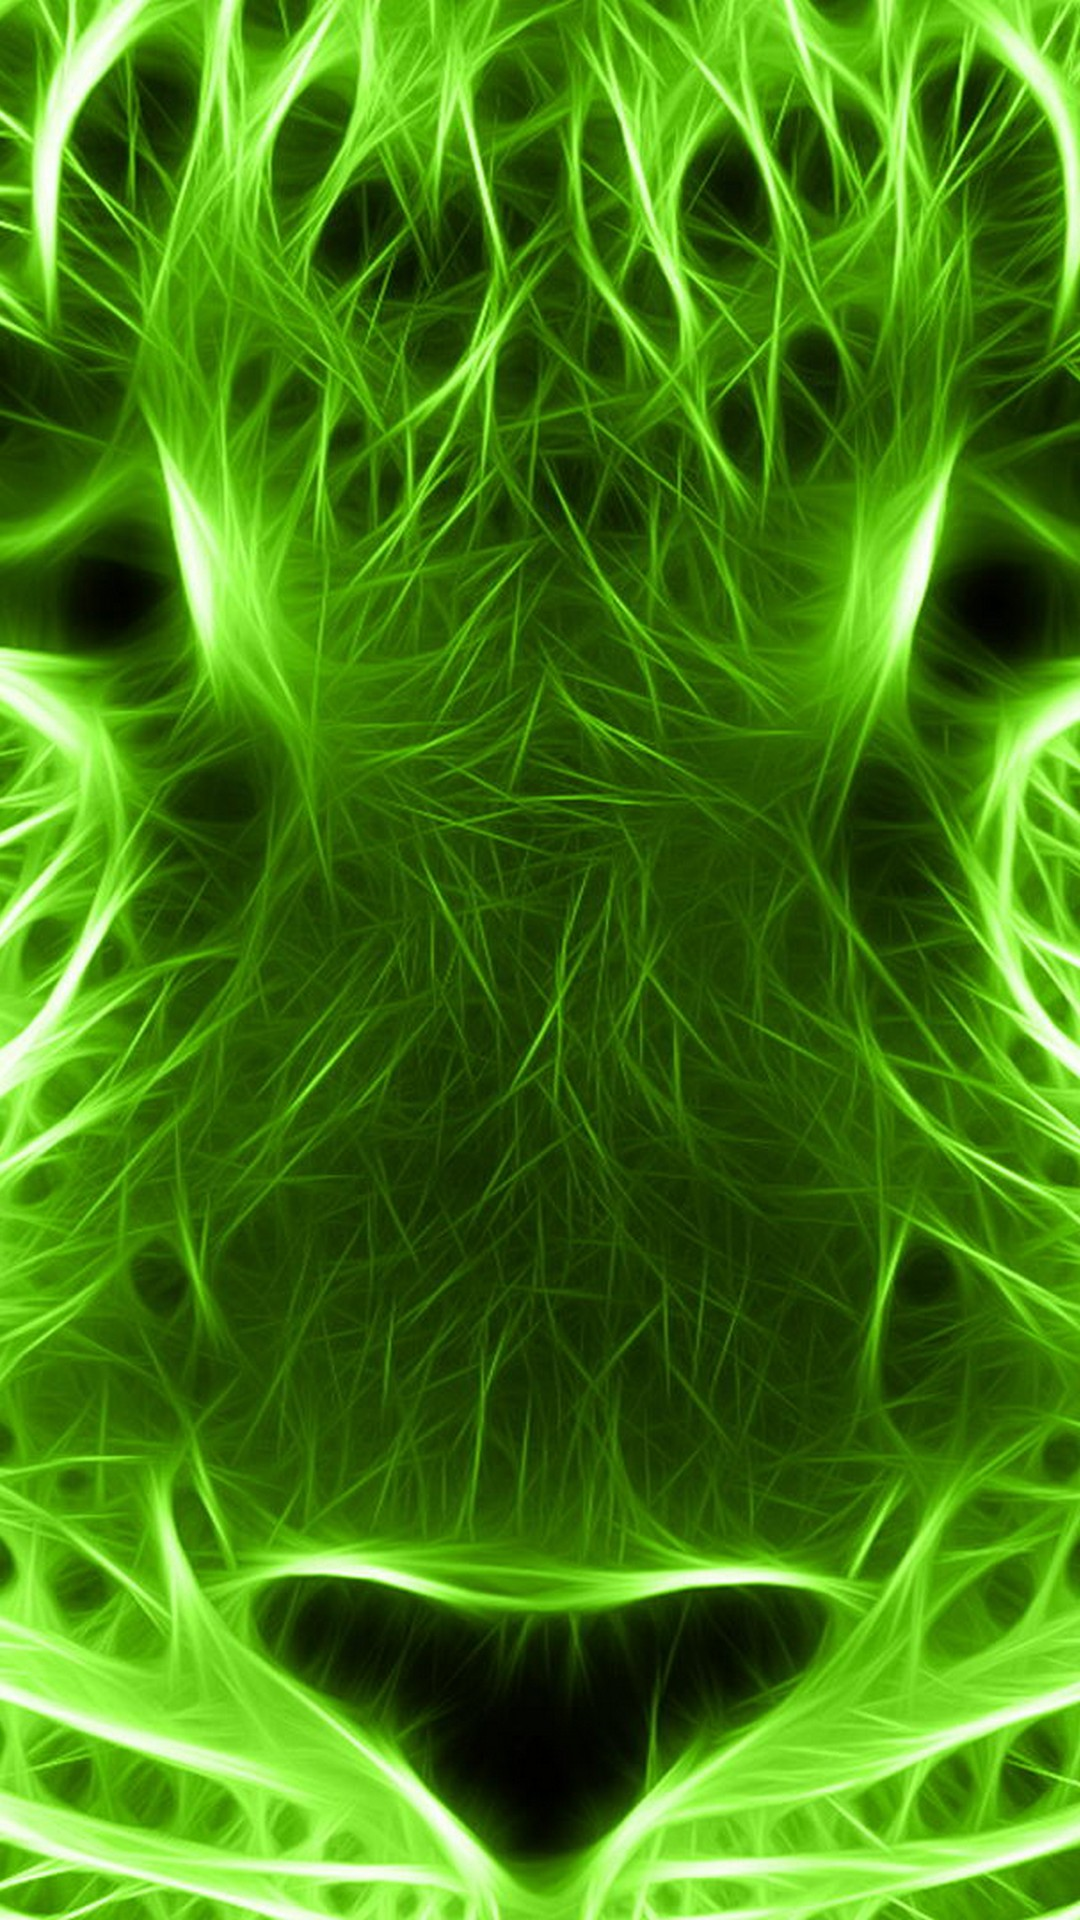 Mobile Wallpapers Neon Green With Image Resolution Electric Green Neon Green 1080x1920 Download Hd Wallpaper Wallpapertip